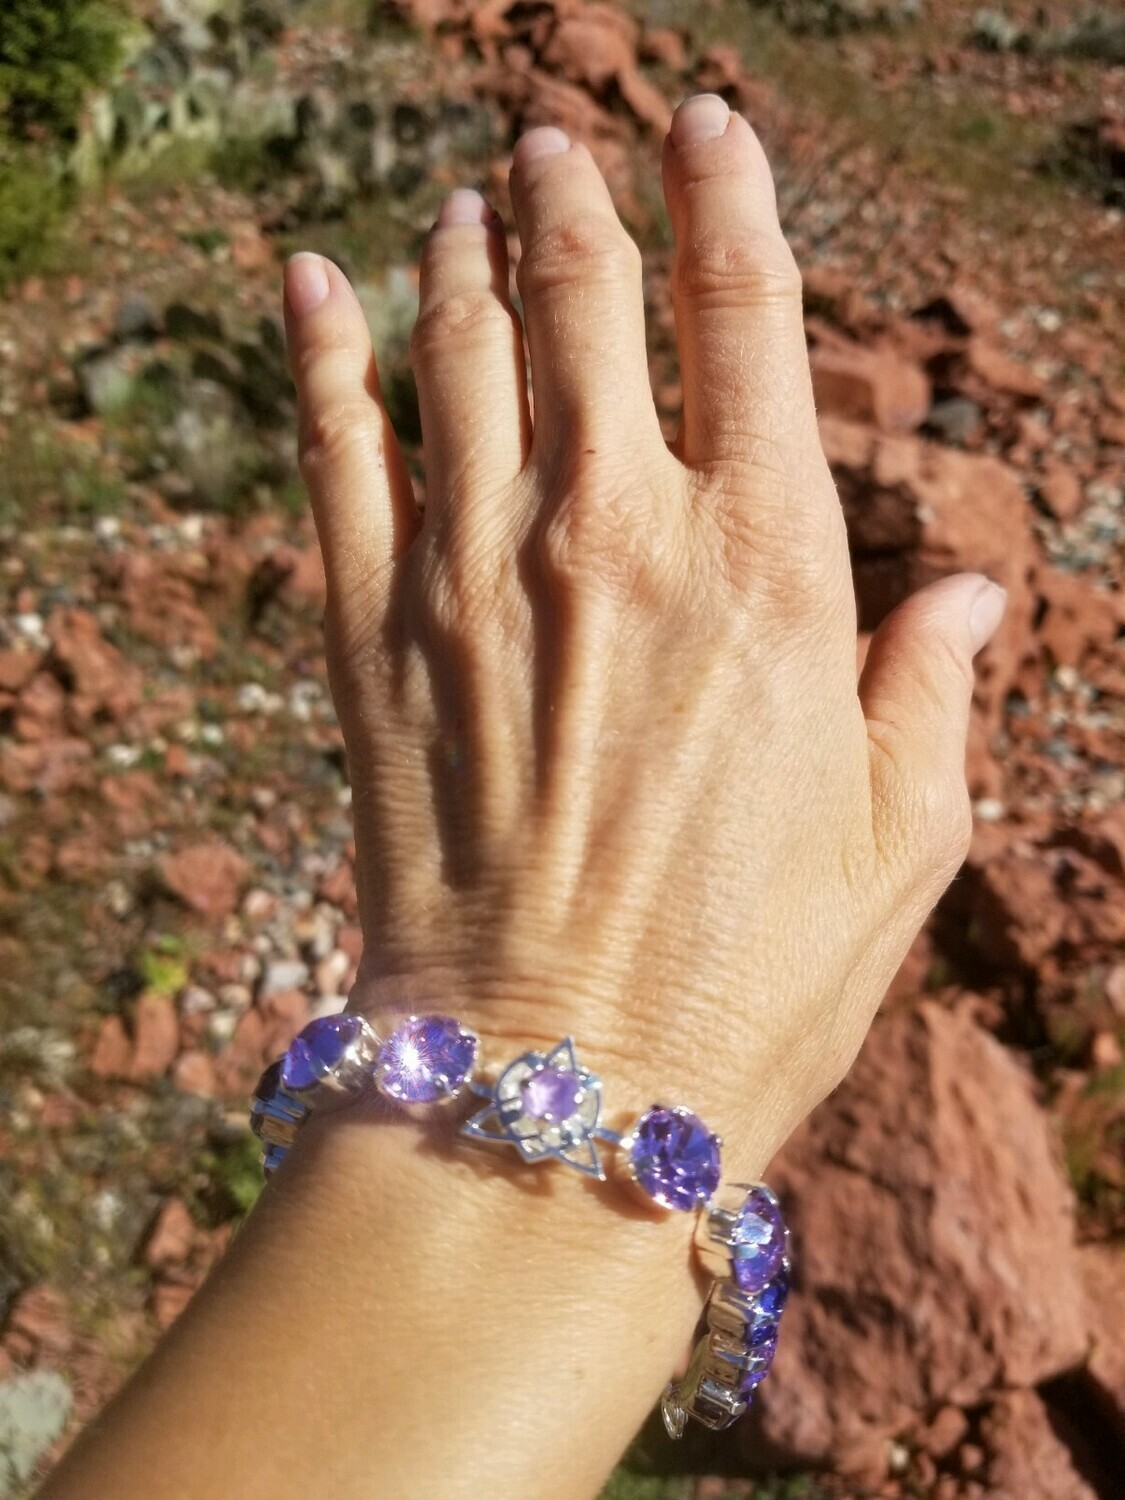 Stunning Violet Flame Star of Lady Portia/ Devic Crystal LOVE Technology Bracelet/$144.00/188.00/Mother Day Retreat Sale